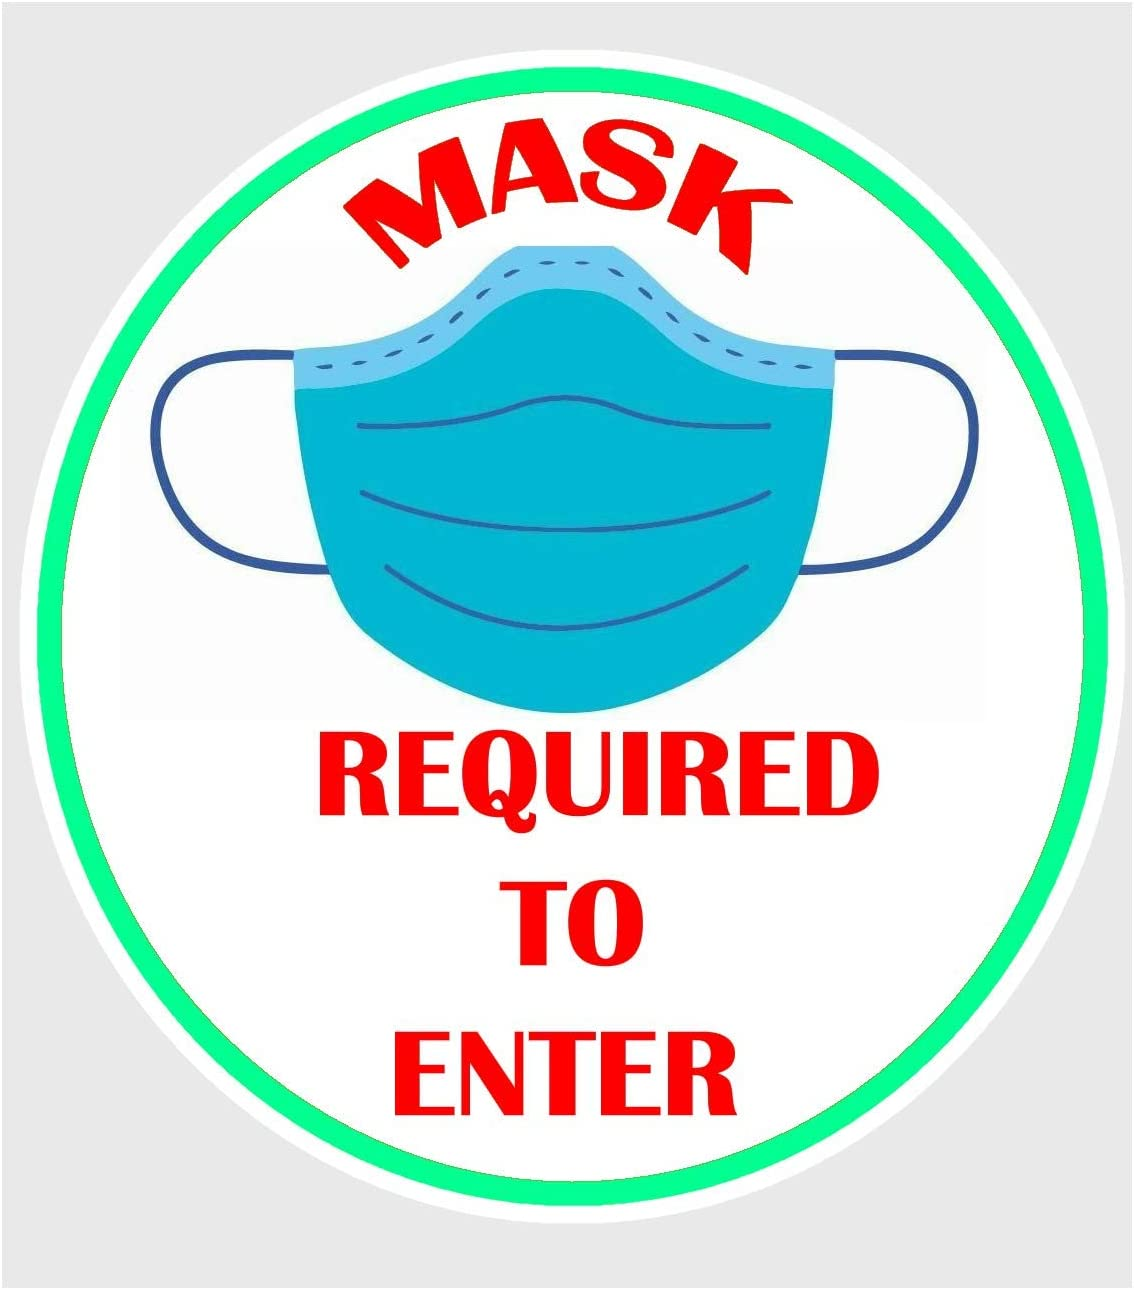 Face Mask Required to Enter Decal Sticker Pack of 4 Size 5 Inch Each